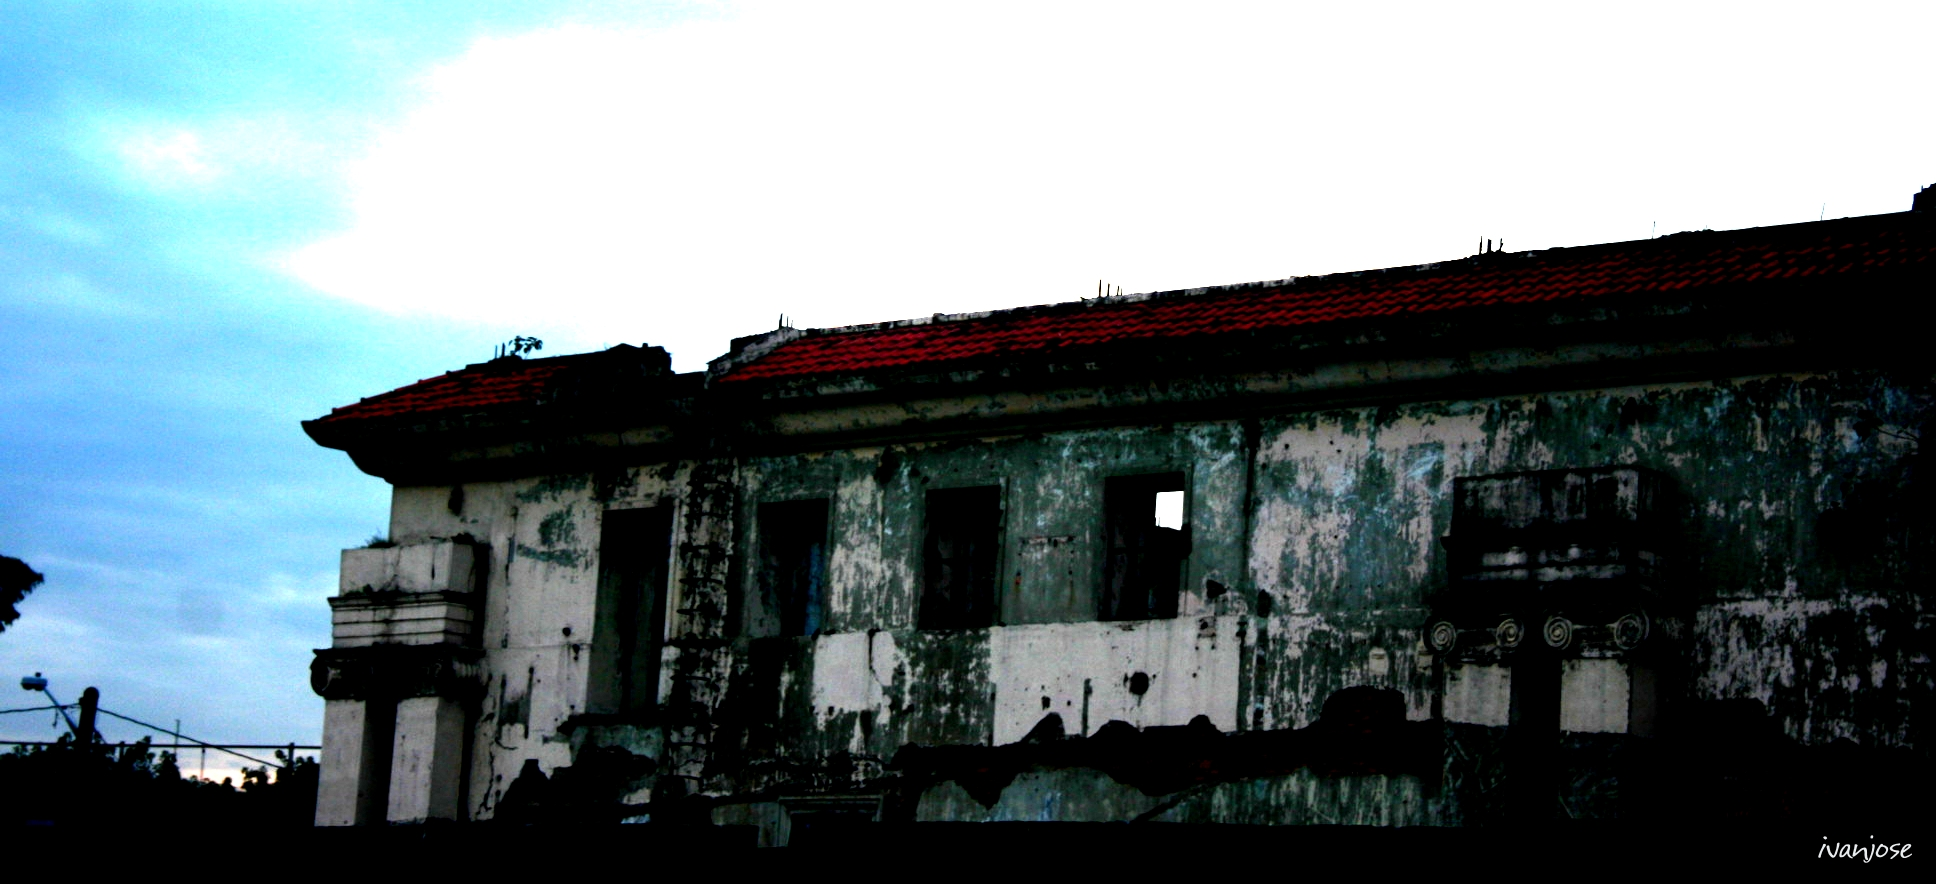 Journey through Gloom: Thoughts on Dark Tourism